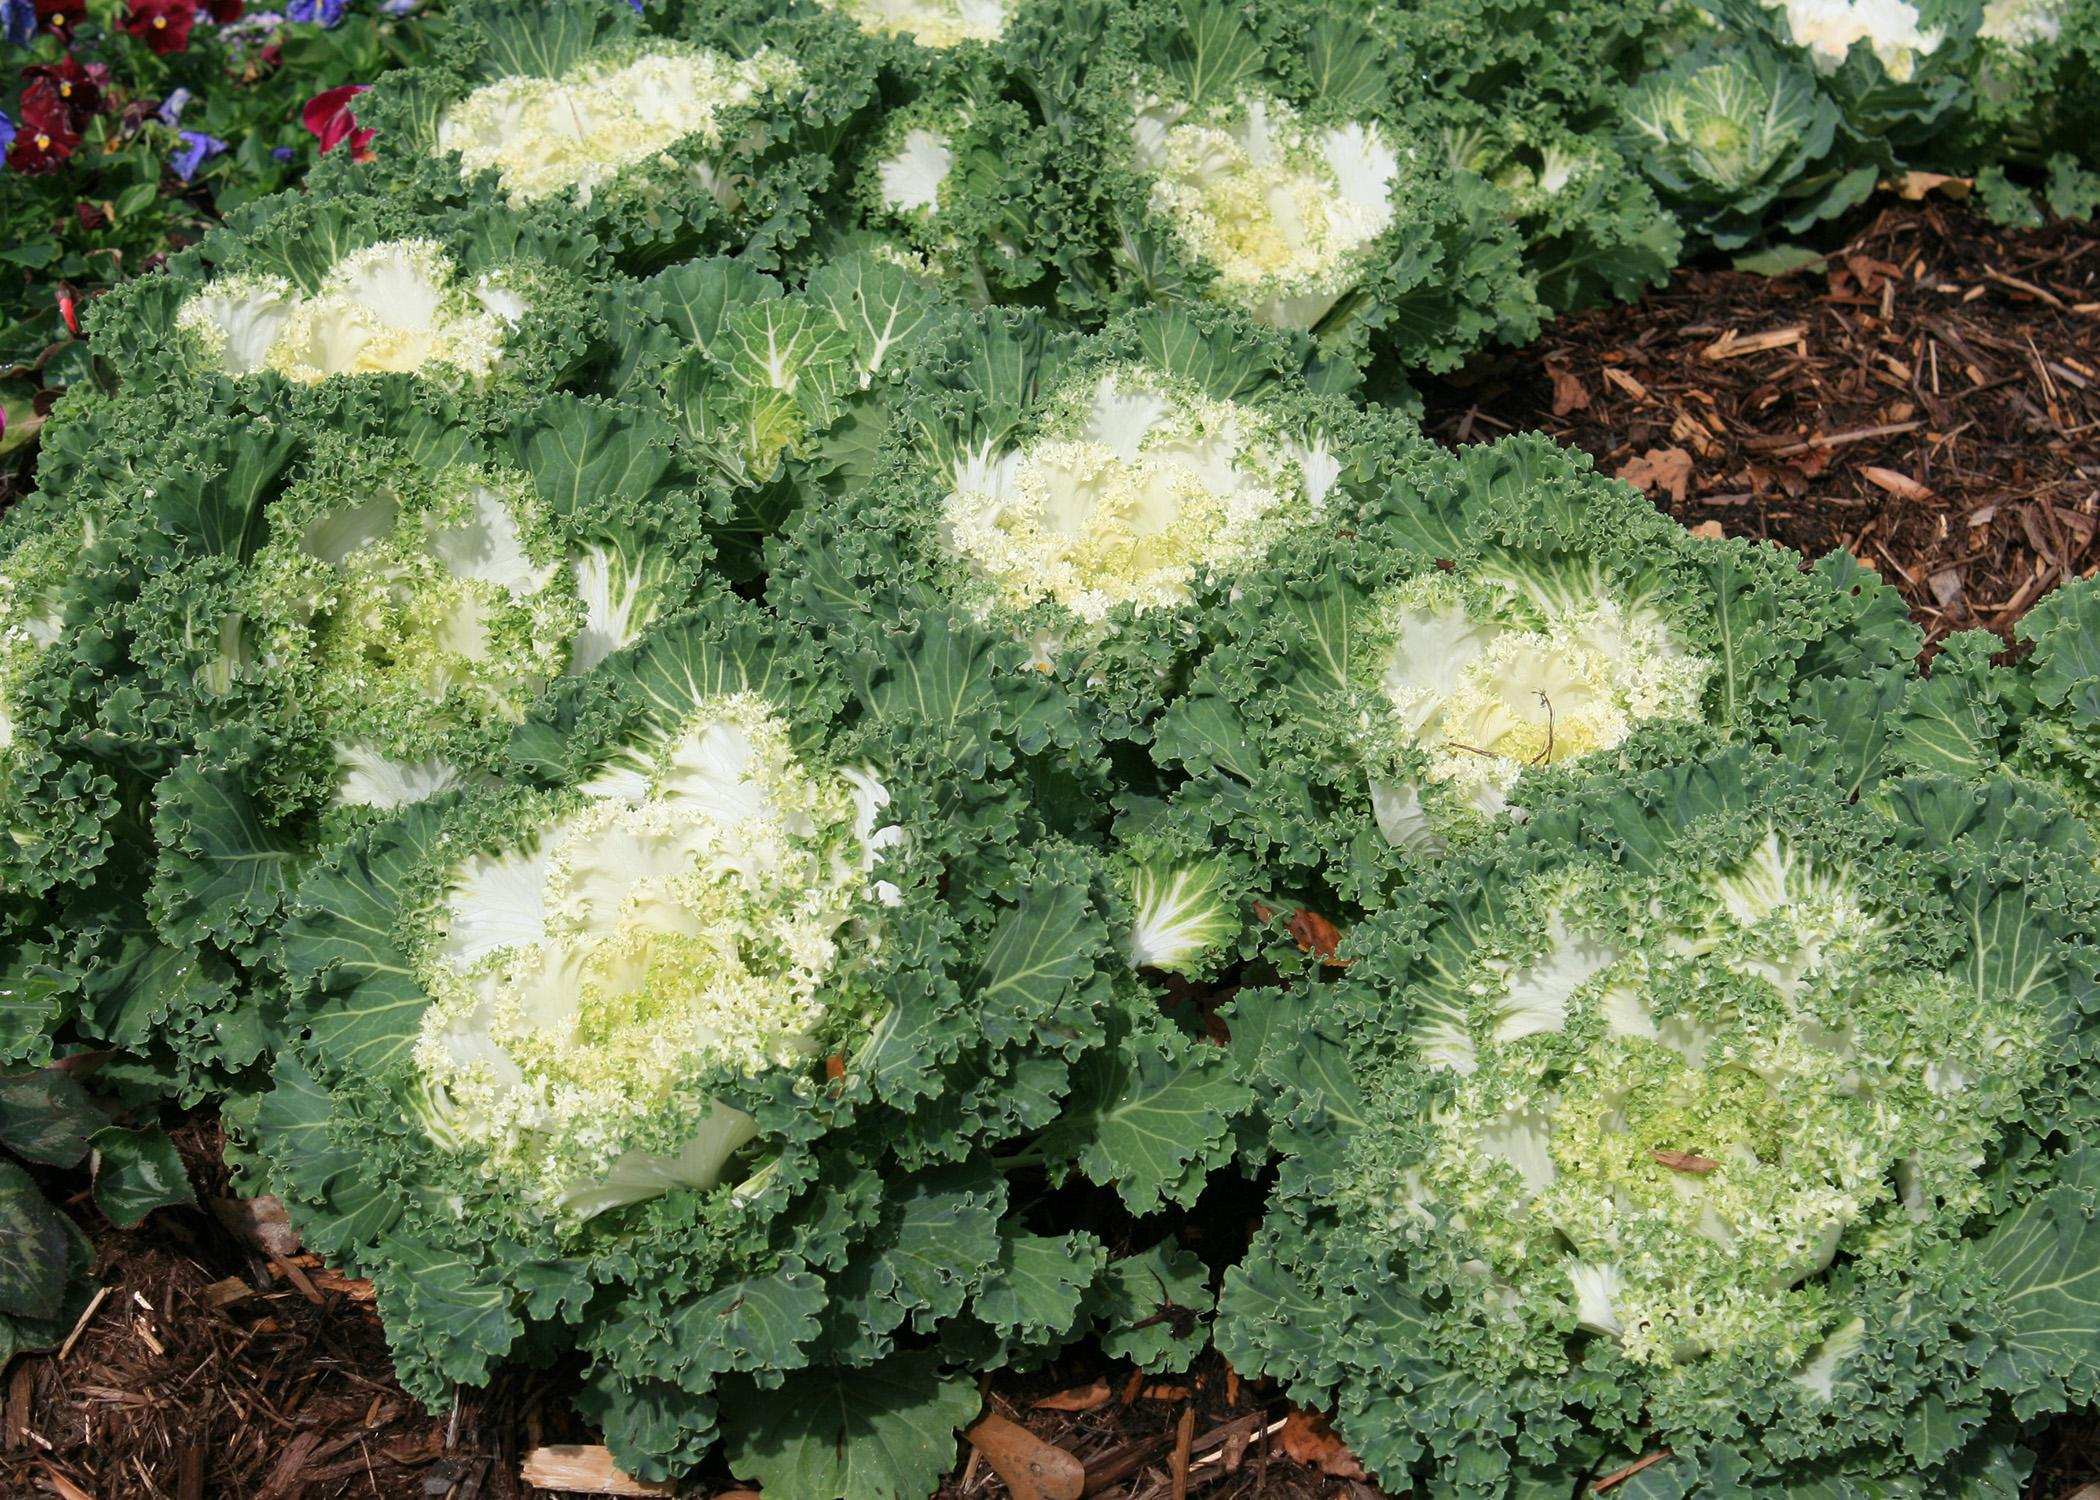 A cluster of green kale plants with white centers.